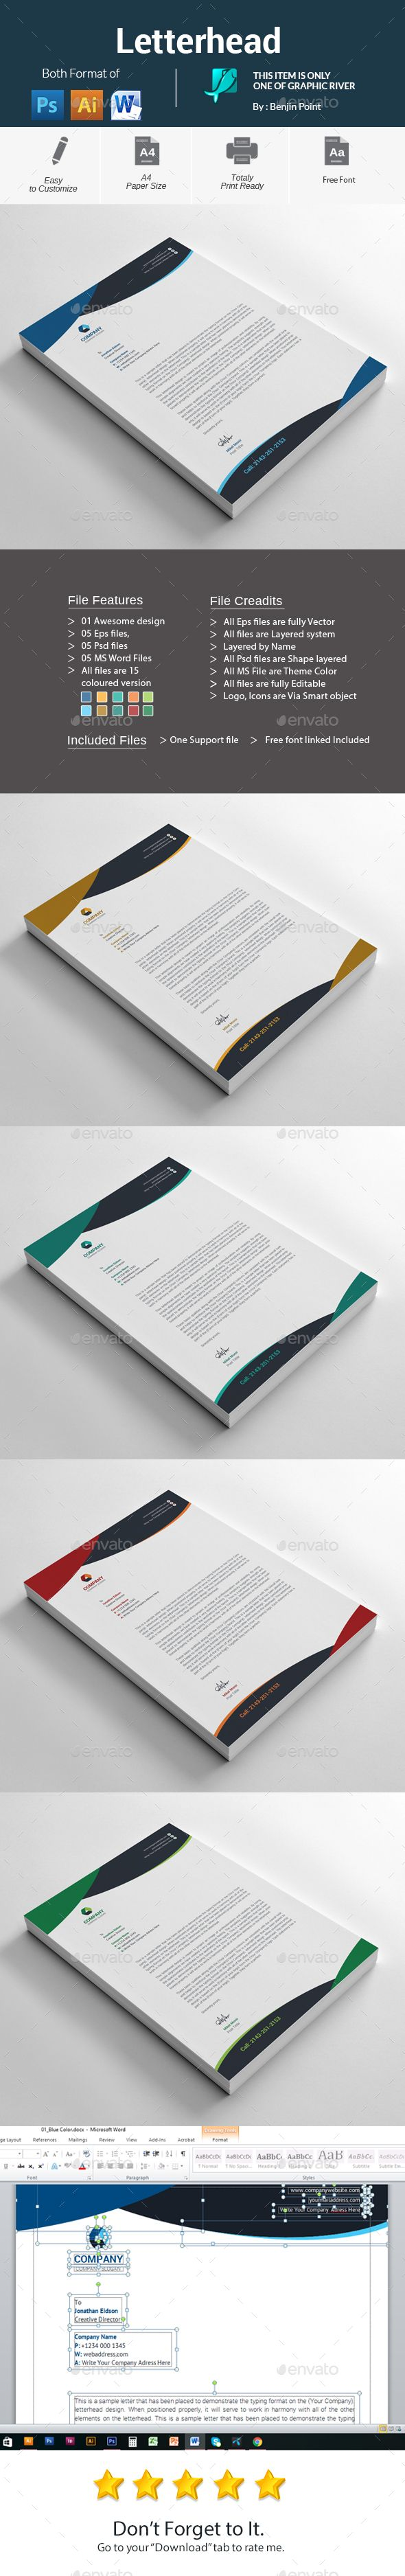 Letterhead template psd vector eps ai ms word letterhead design letterhead template psd vector eps ai ms word spiritdancerdesigns Image collections